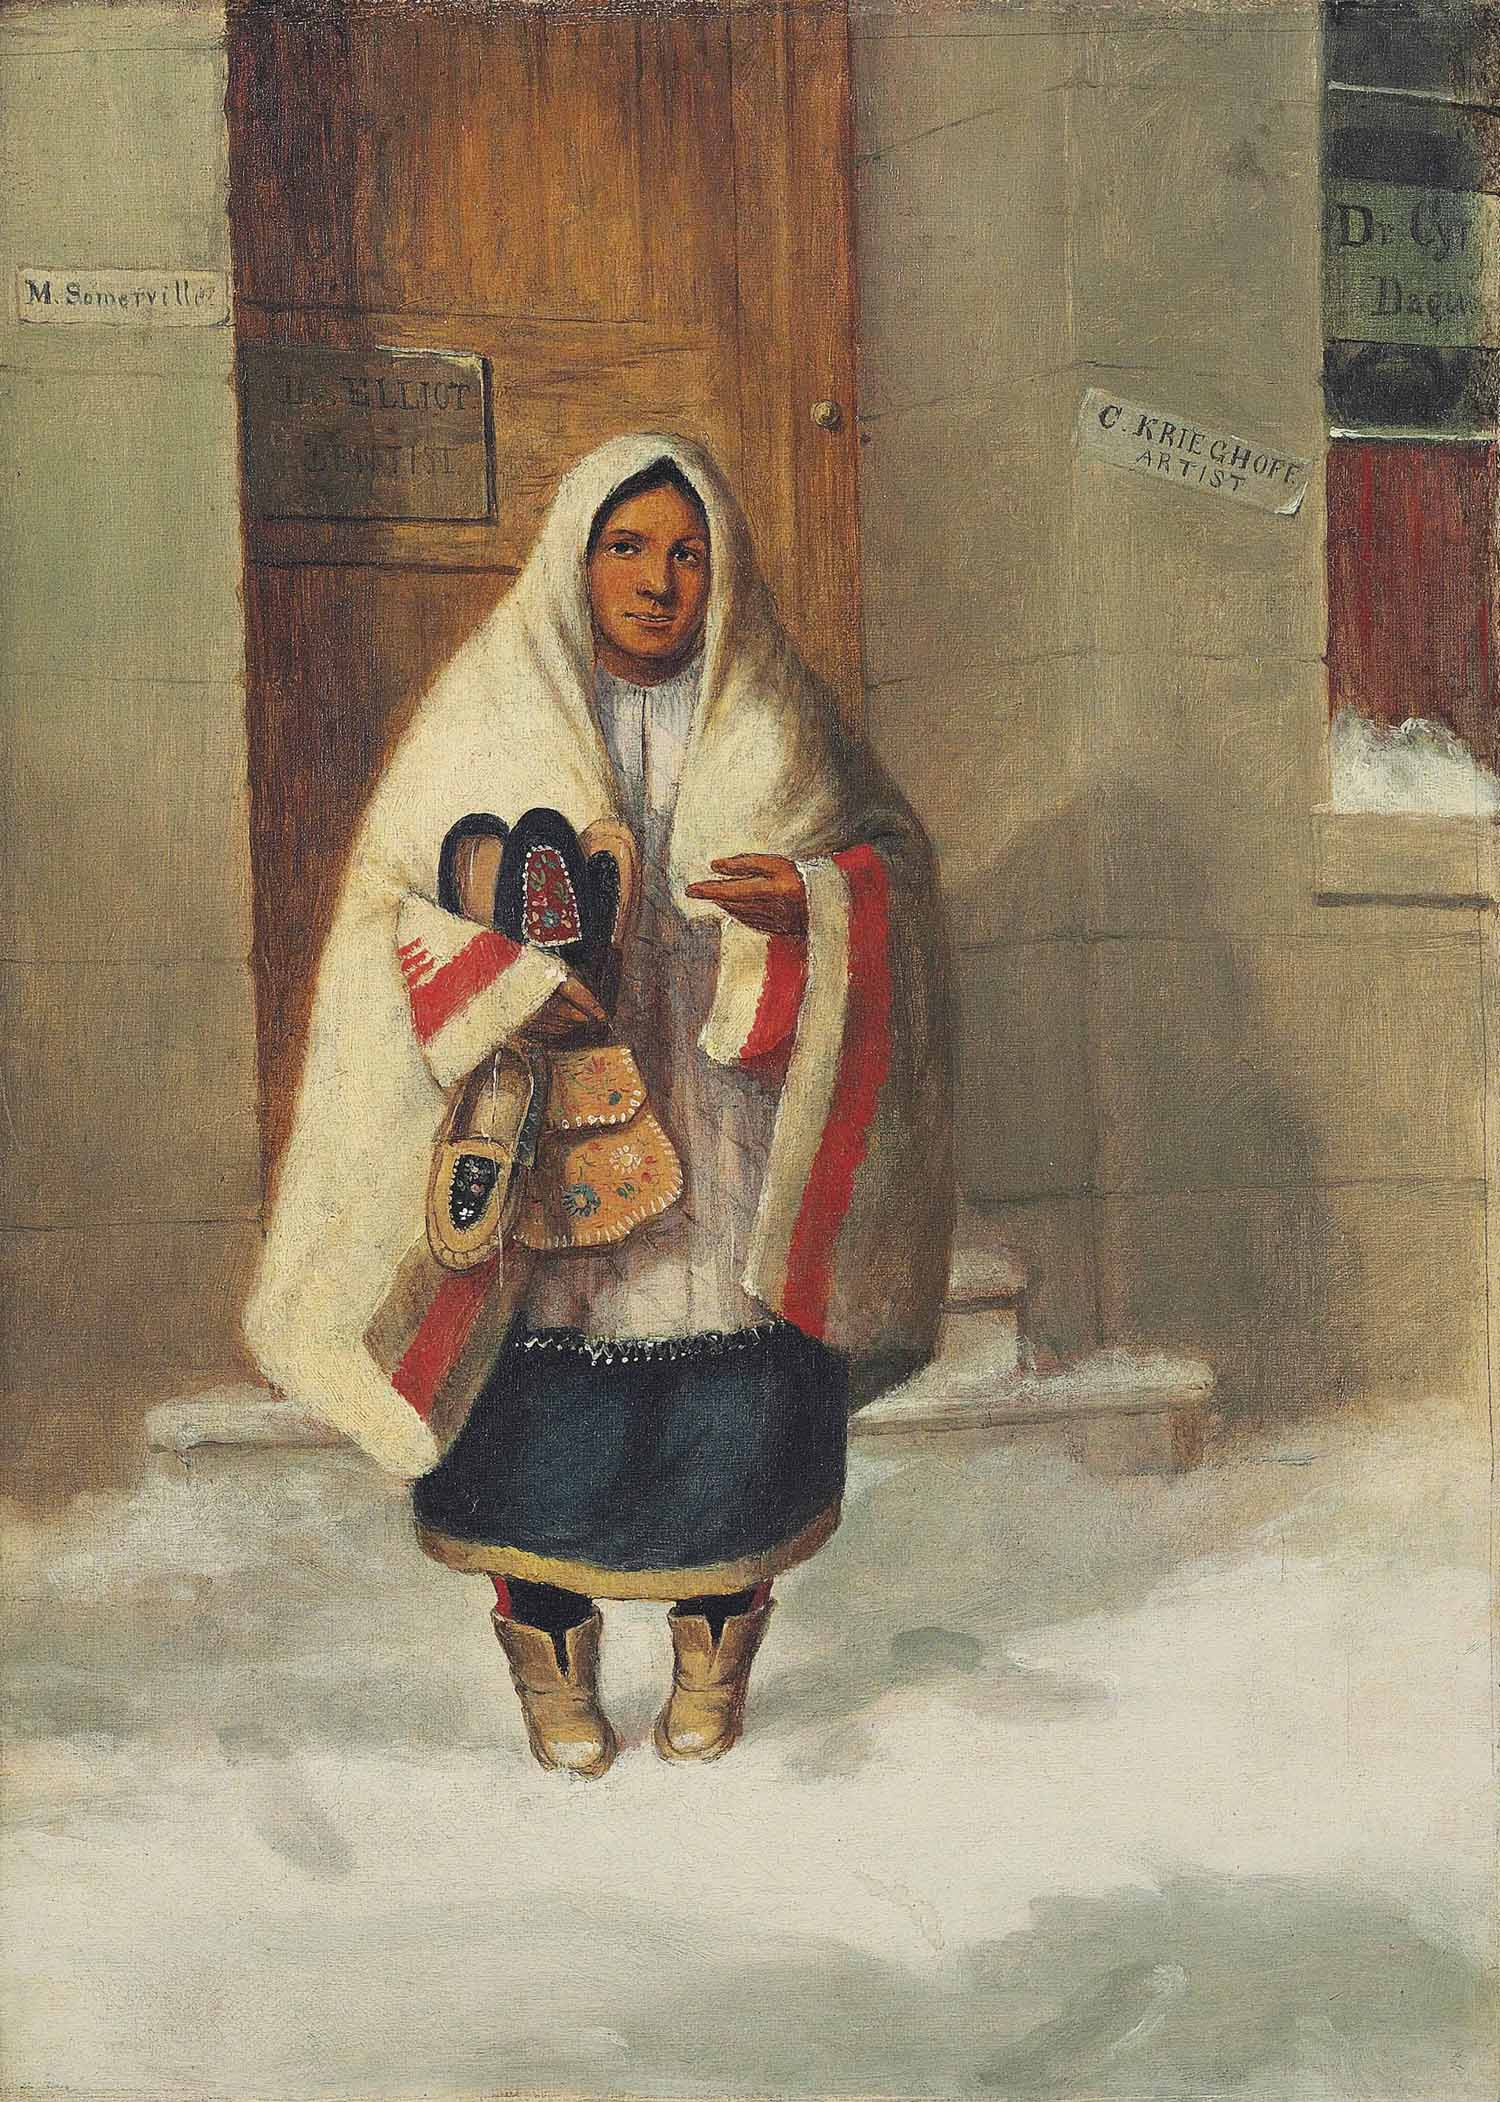 A Moccasin seller outside the artist's studio (c.1849) [Marie of Montreal]